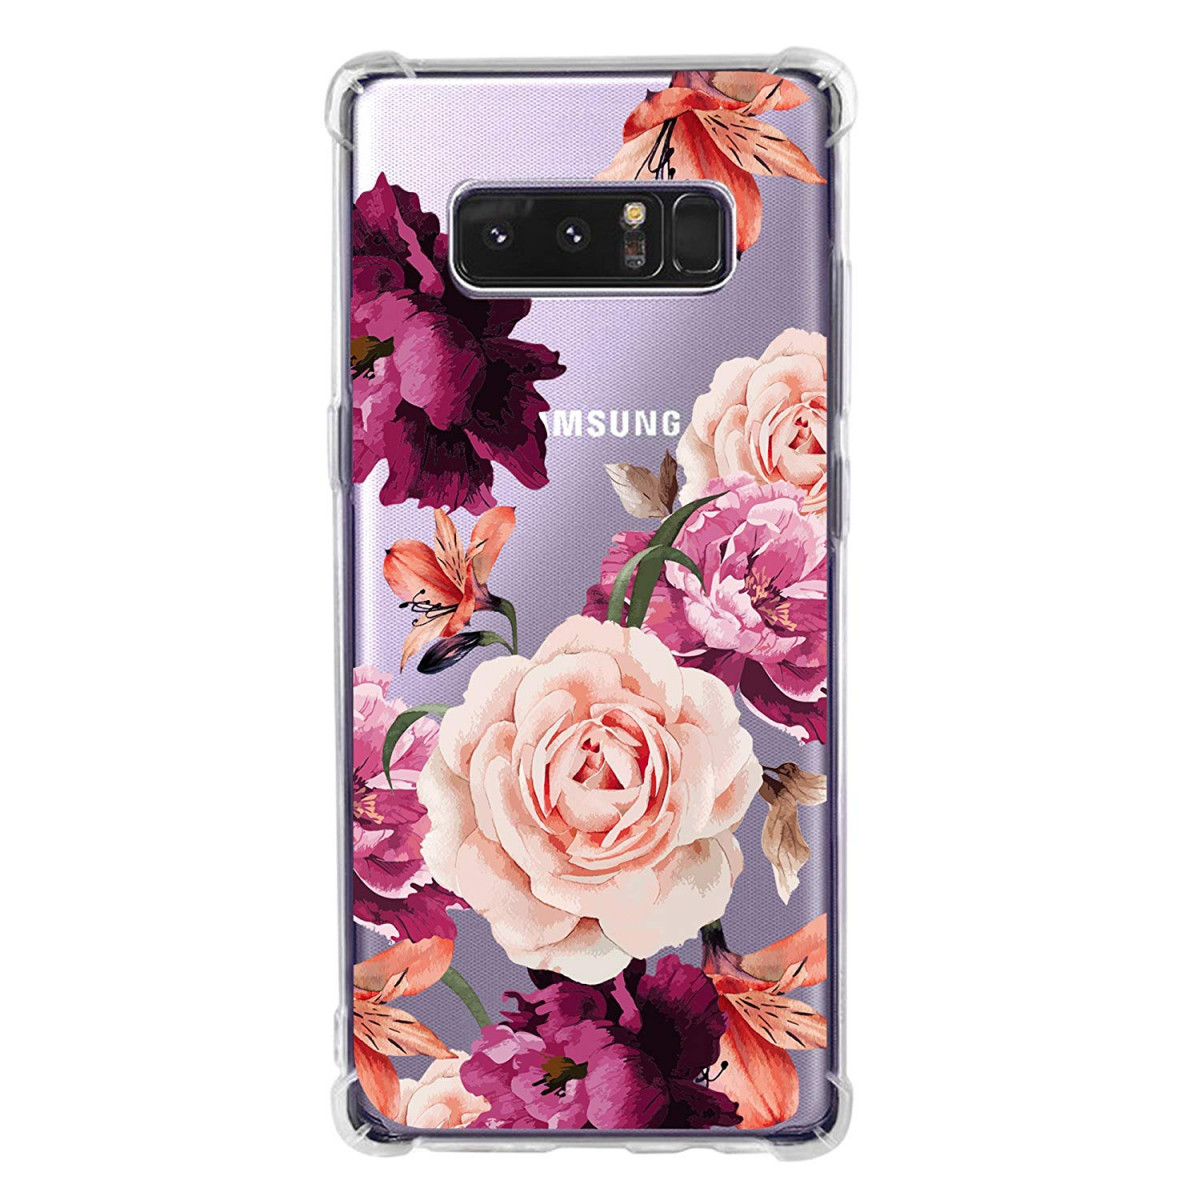 53ea48a6e91d Galaxy Note 8 Case for Women Clear with Cute Flowers Design Shockproof  Protective Case for Samsung ...